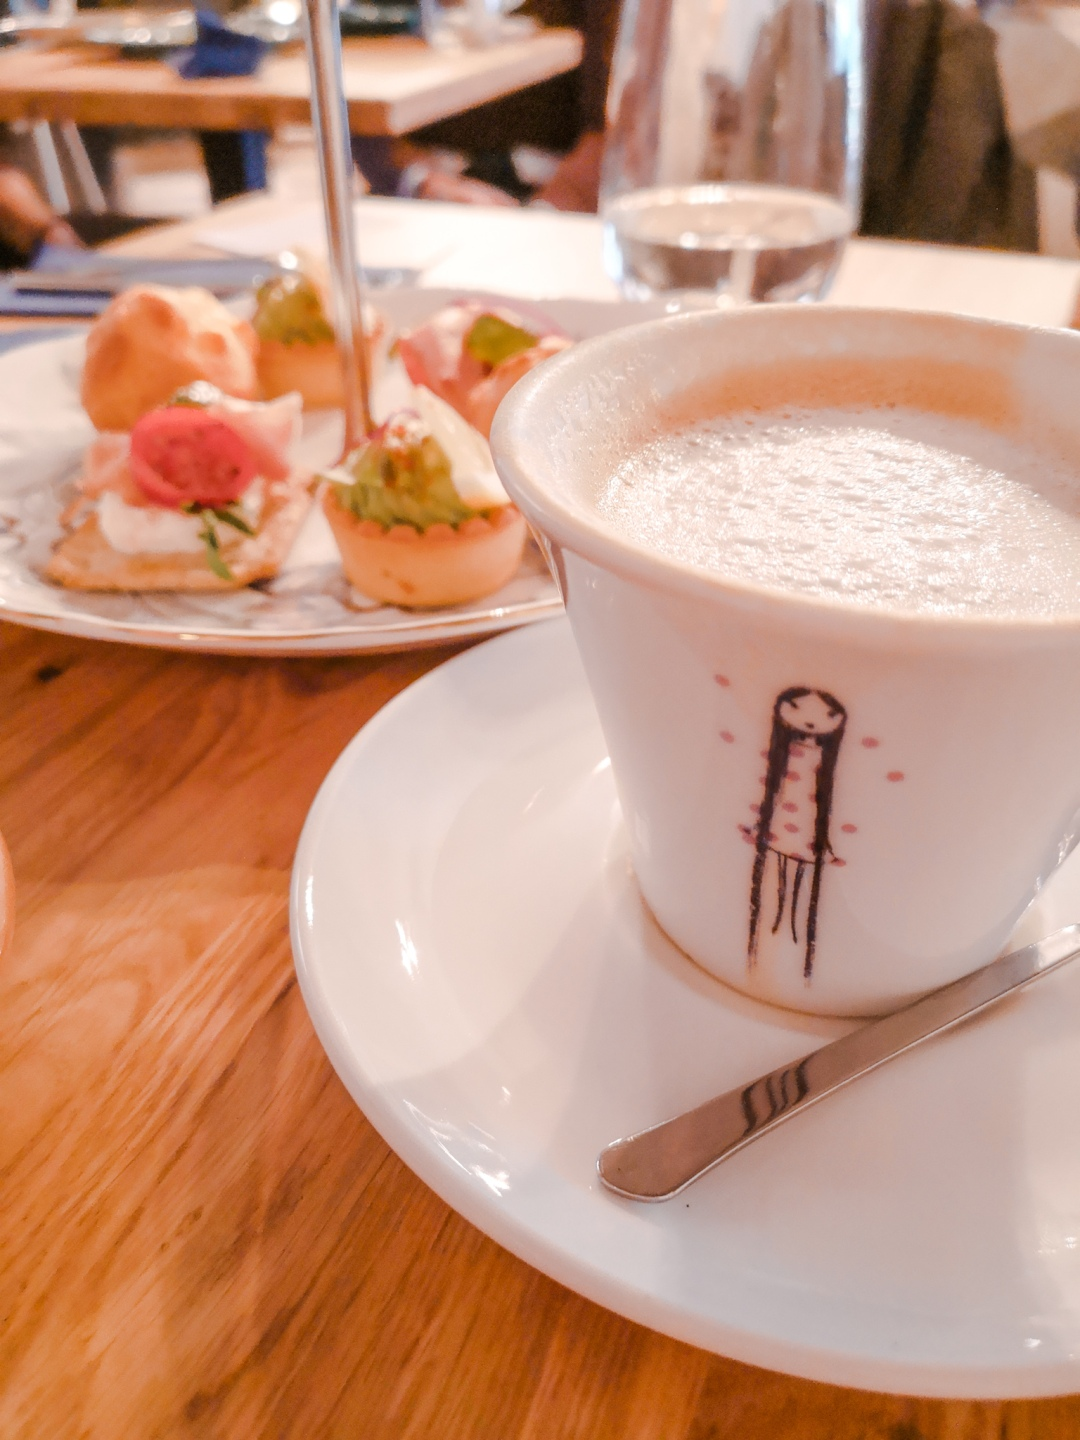 Best places for Saturday brunch in Sofia Bulgaria